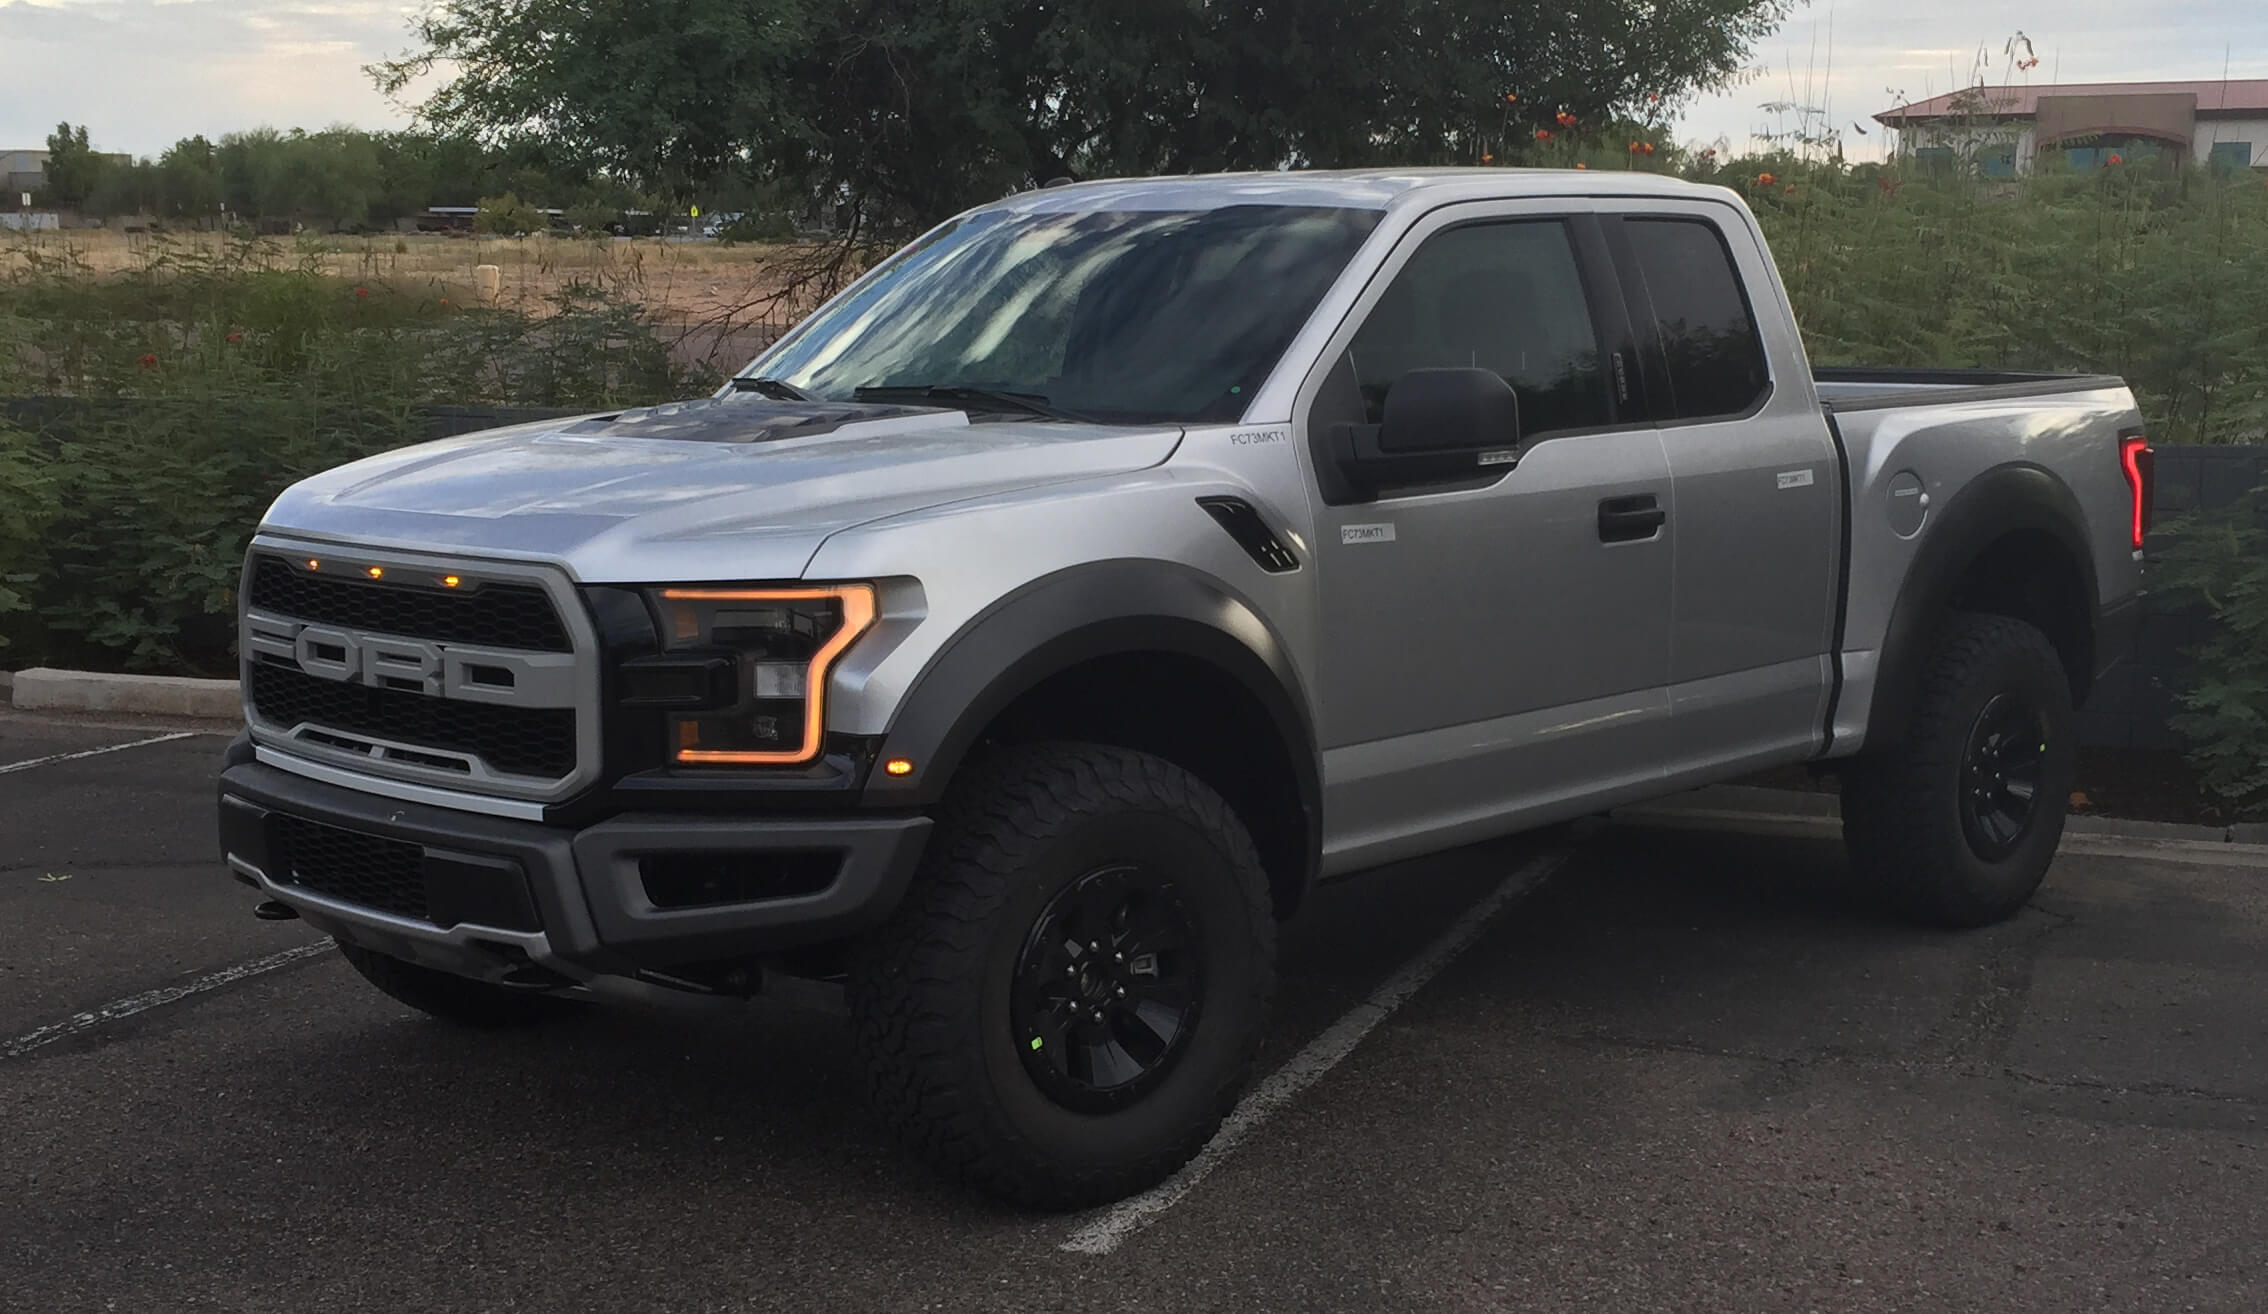 2017 Ford Raptor In Ingot Silver Card From User Zaharowazaharova 2006 F250 Fuse Box Van Cat2018 Yandexcollections